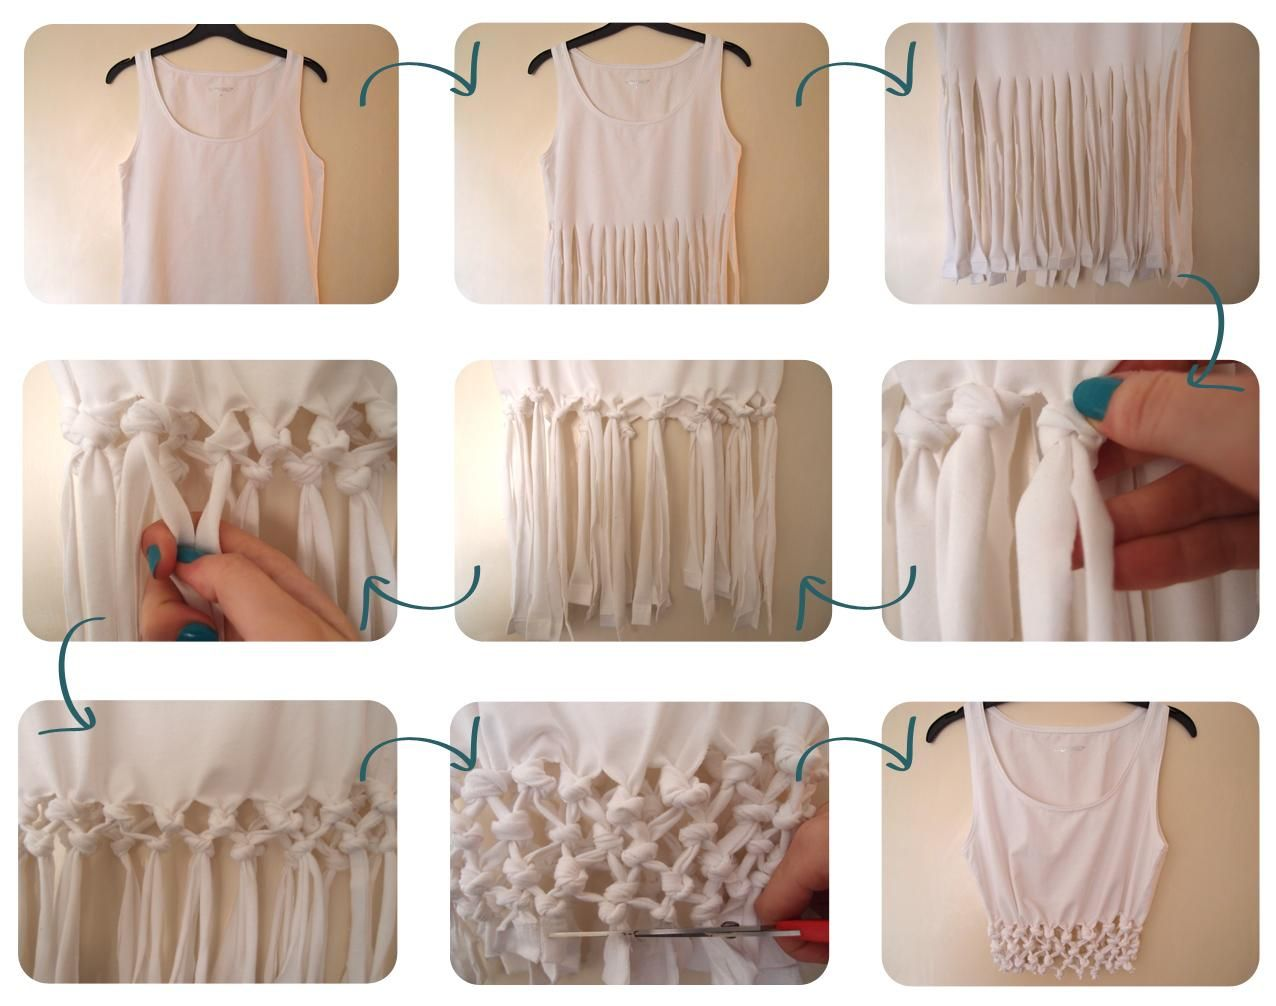 diy tutorial t shirt refashion refashion a t shirt cut t shirt design ideas cutting - T Shirt Design Ideas Cutting